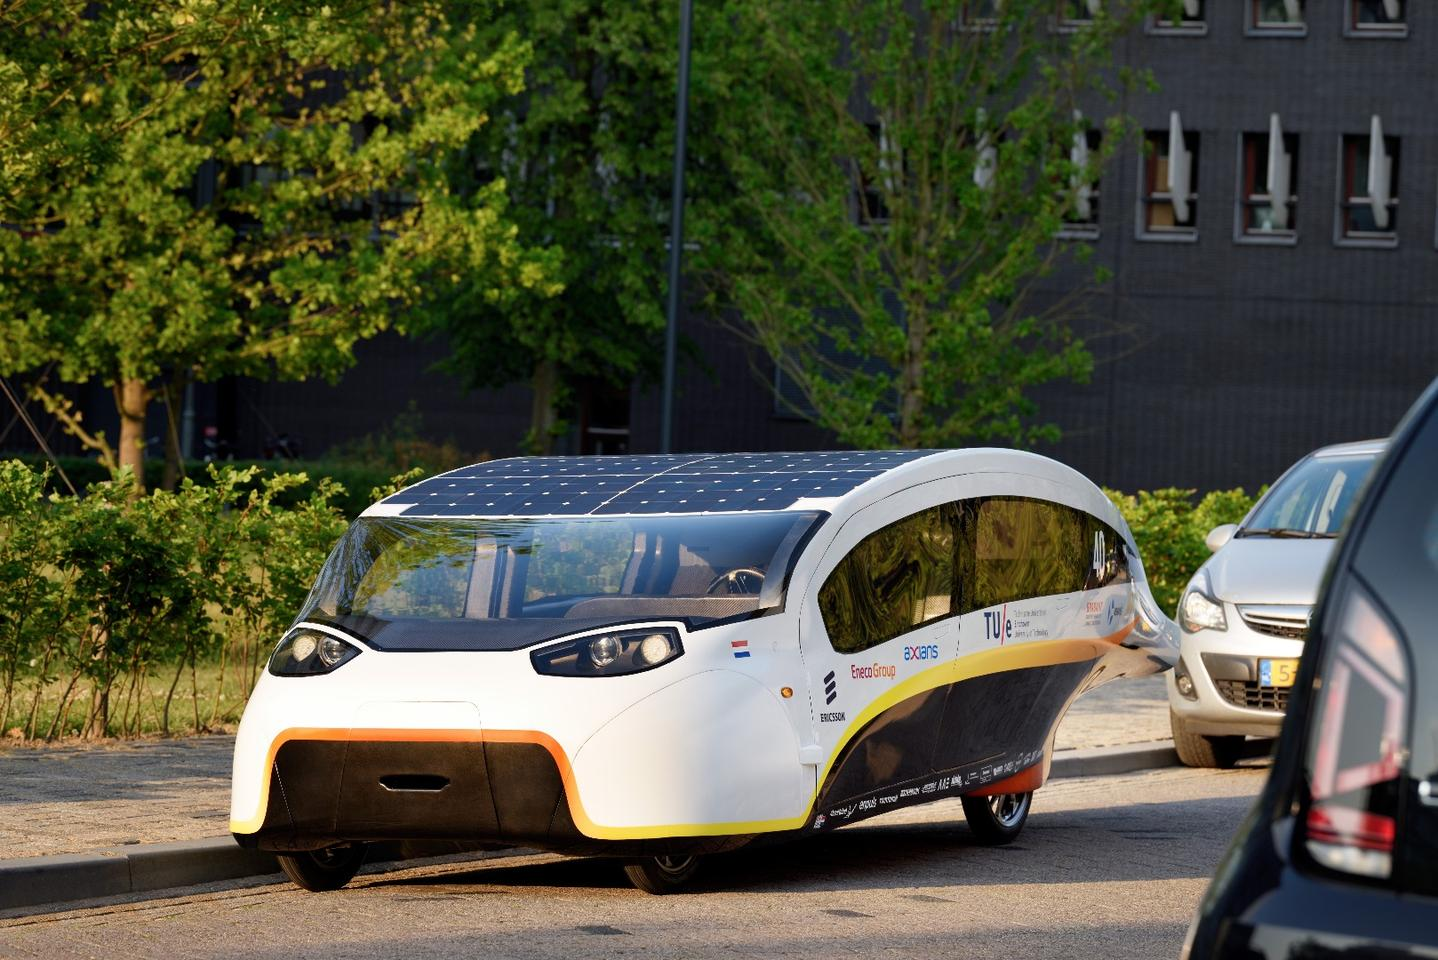 The latest solar car to roll forth from the Technical University of Eindhoven